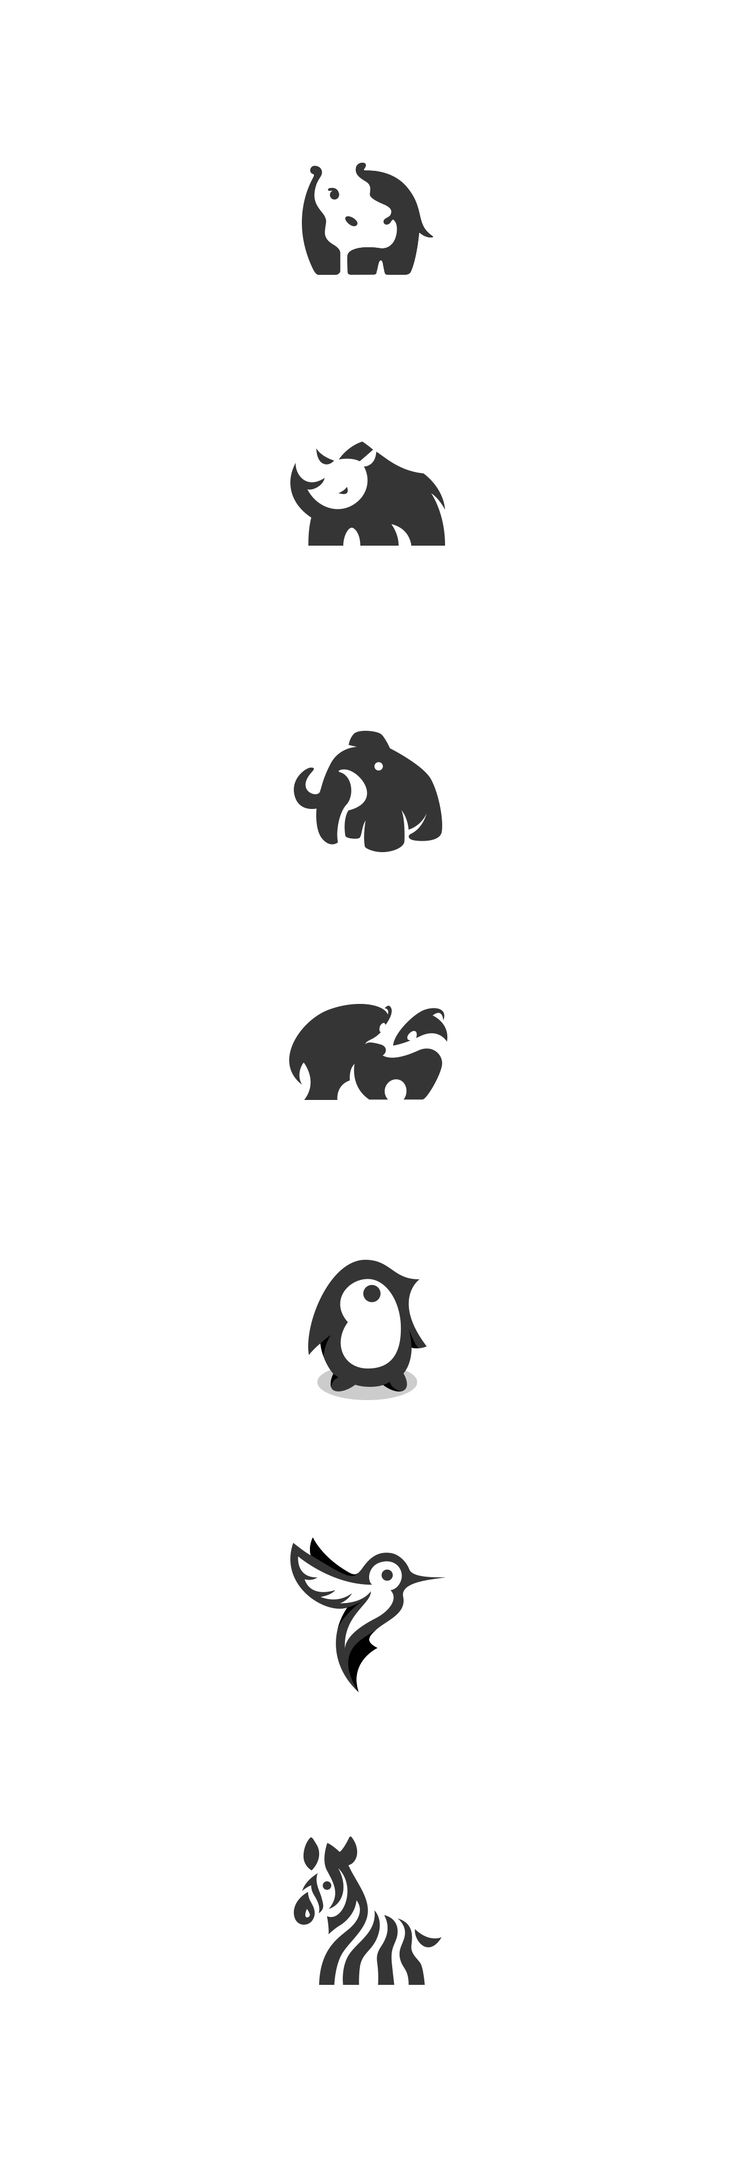 Here are some of my selected negative space animal logo designs. #negative space #logos #marks #logo #identity #animals #rhino #hippo #zebra #badger #illustration #graphic #kreatank